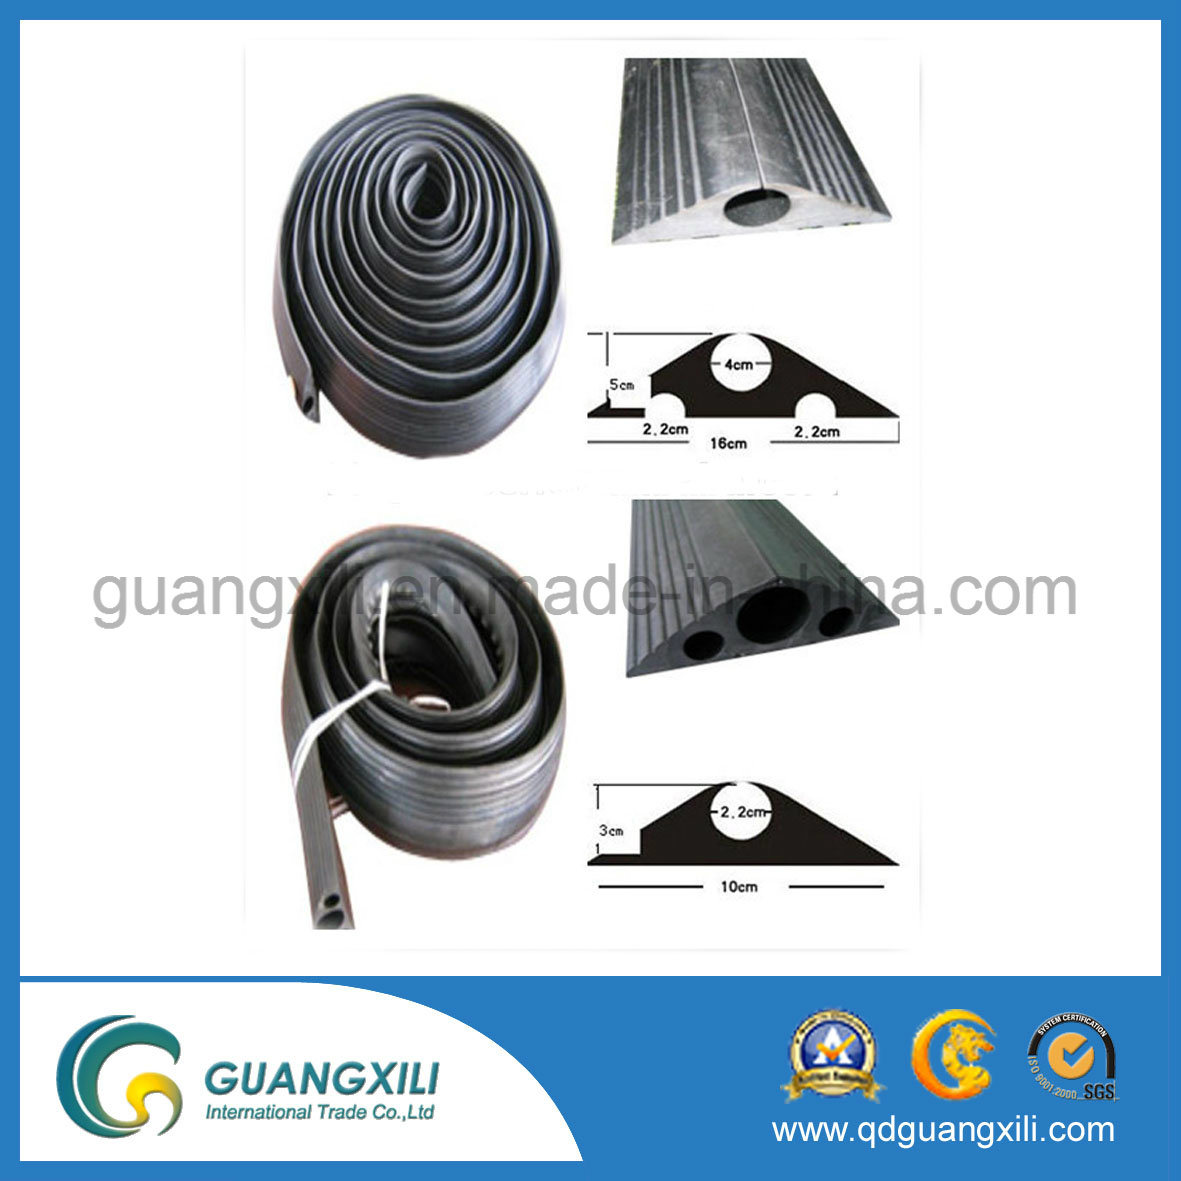 Single Hole Outdoor Rubber Protector for Cable Safety